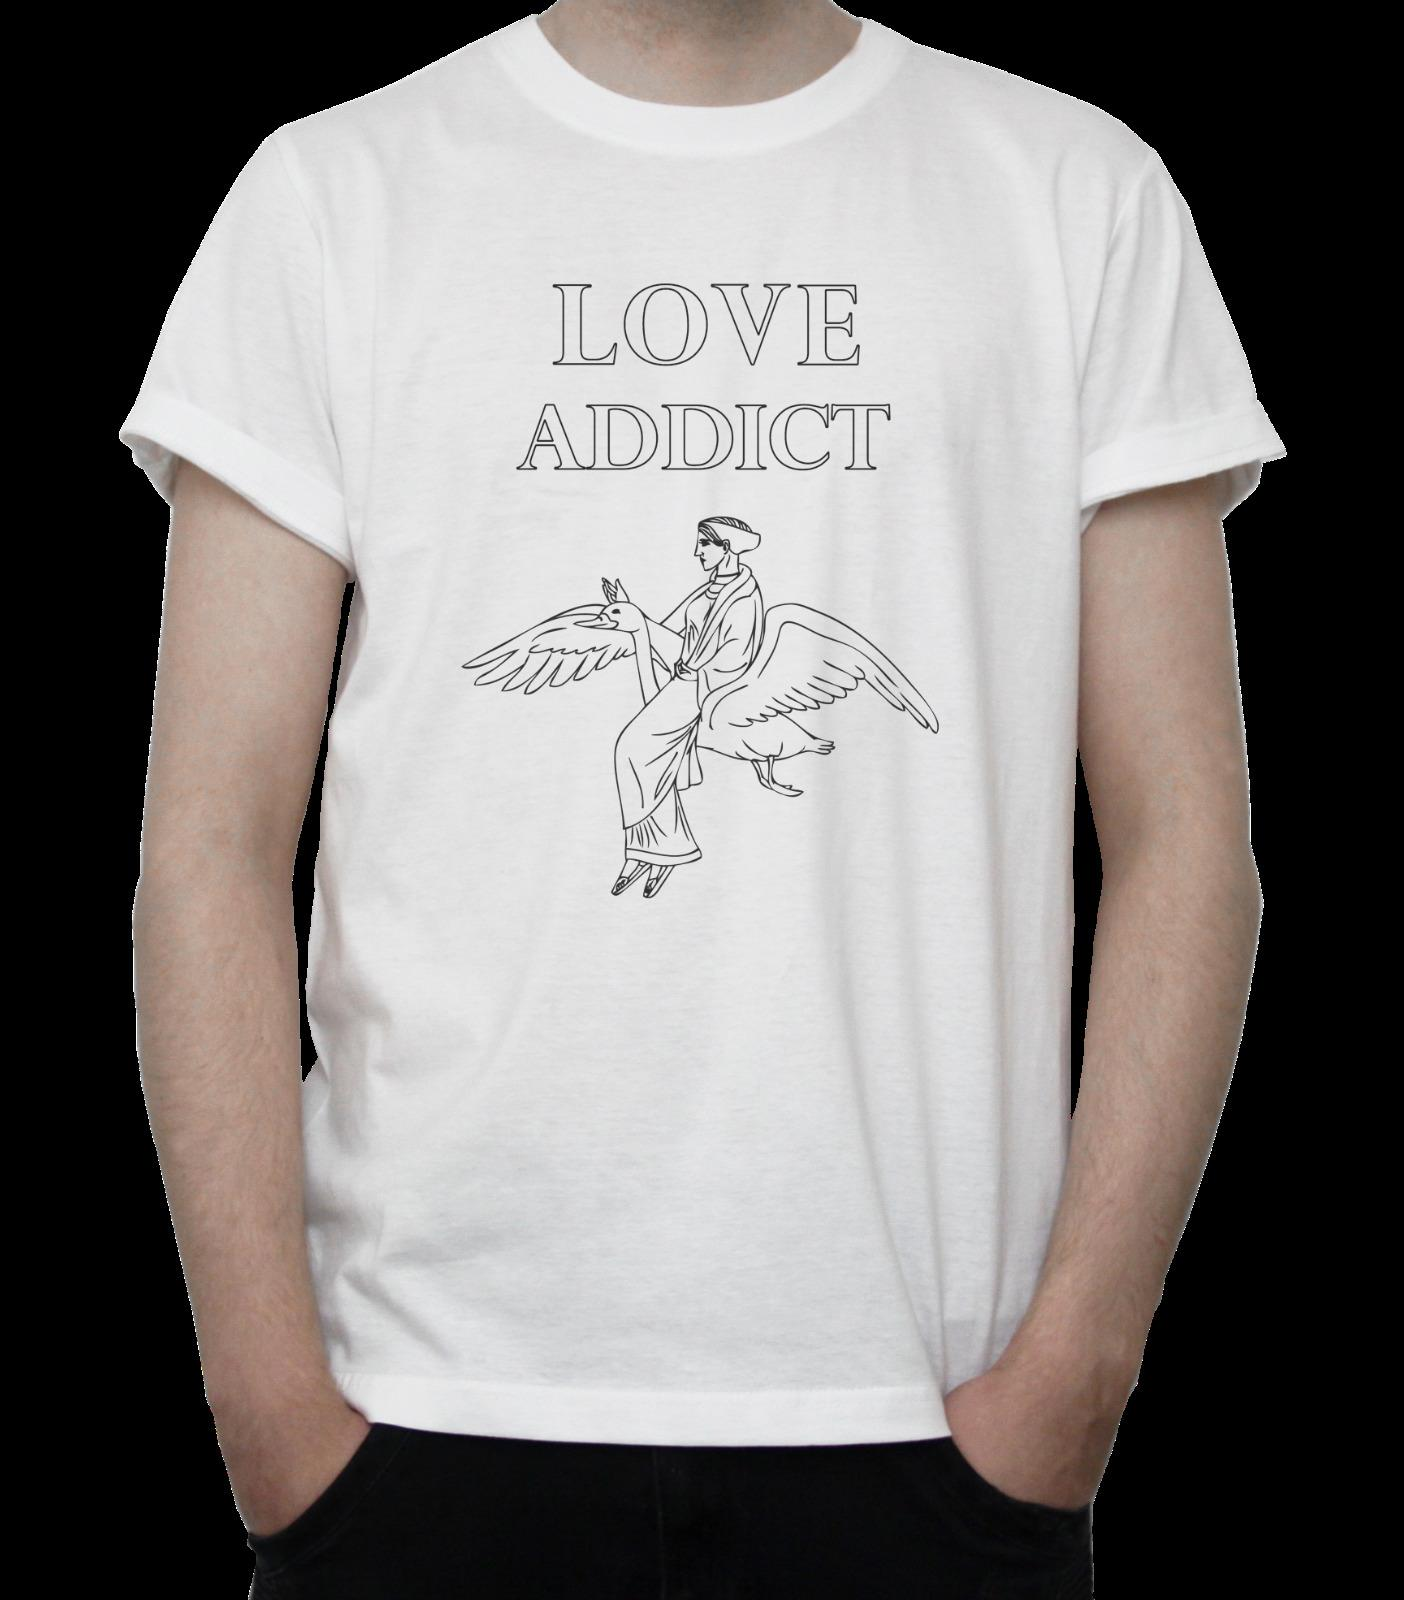 LOVE ADDICT DESIGN T-SHIRT Flying GODDESS Beautiful DRAWING Goose GREY White ize discout hot new tshirt top free shipping t-shirt